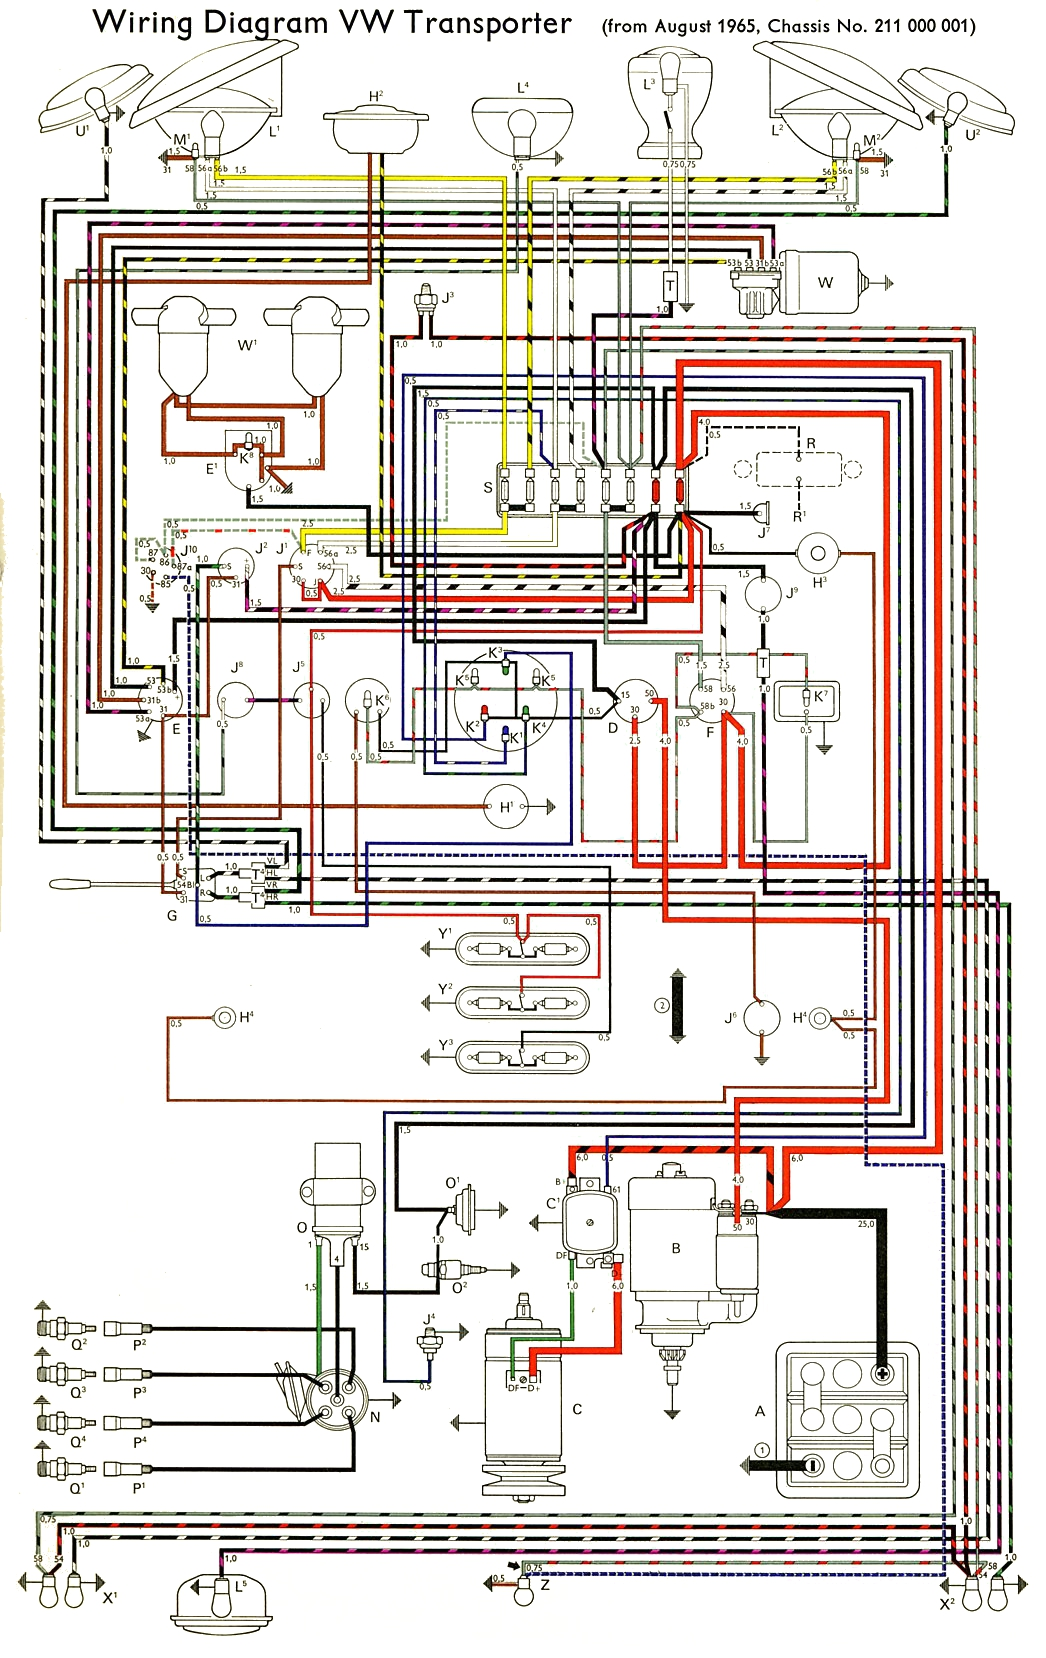 thesamba com type 2 wiring diagrams rh thesamba com Volkswagen Beetle  Wiring Diagram 56 VW Bug